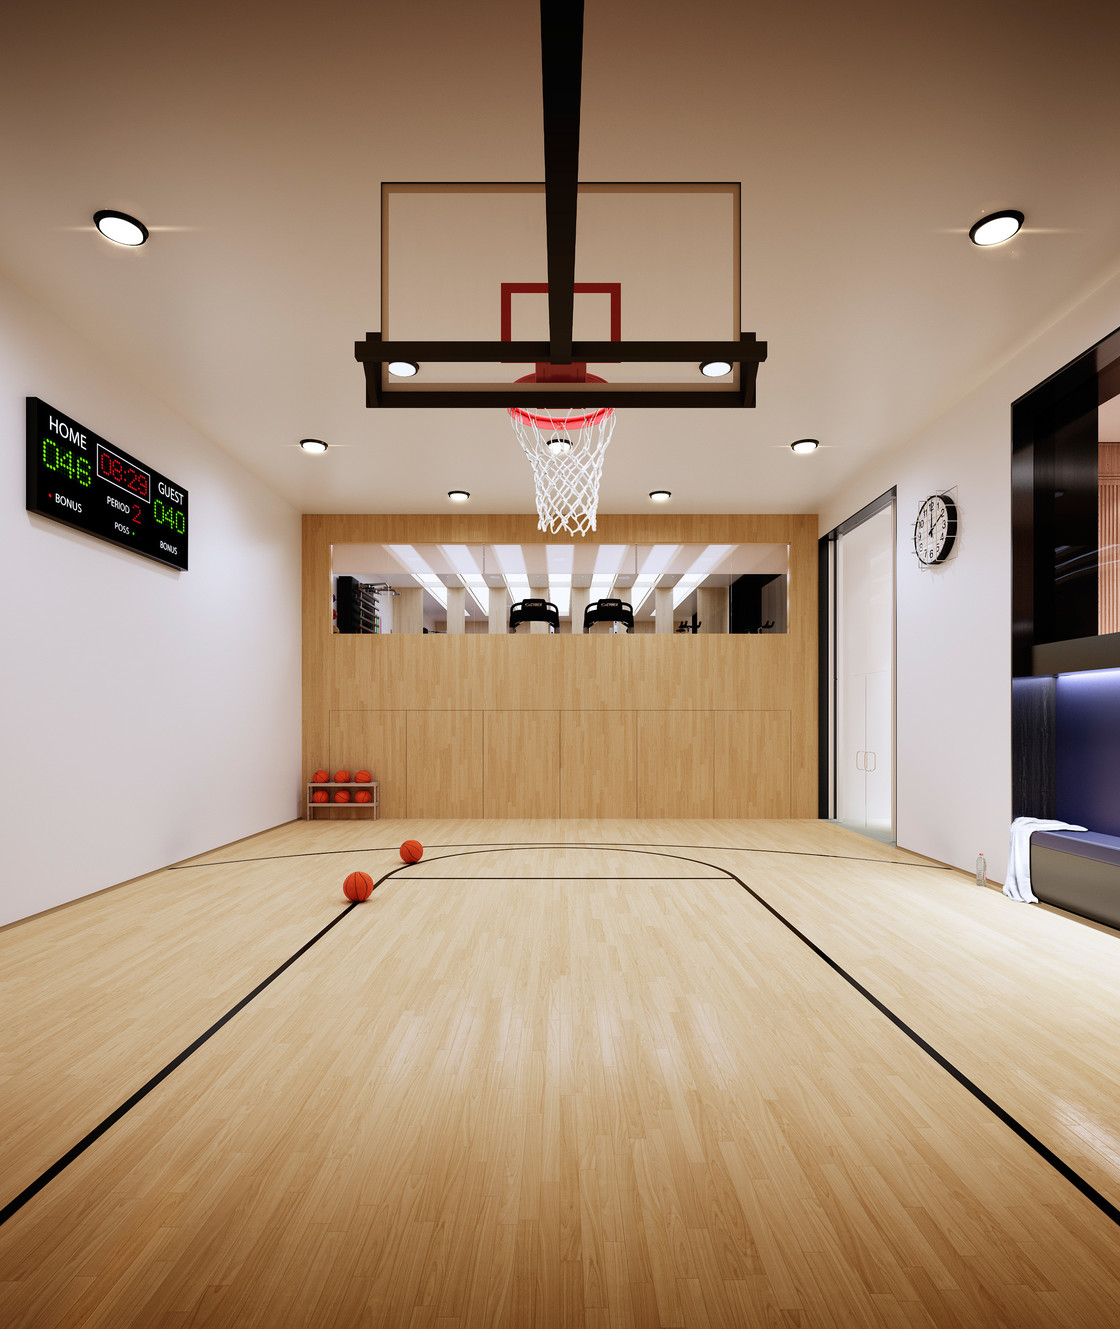 The amenities at 221 west 77 for How to build your own basketball court